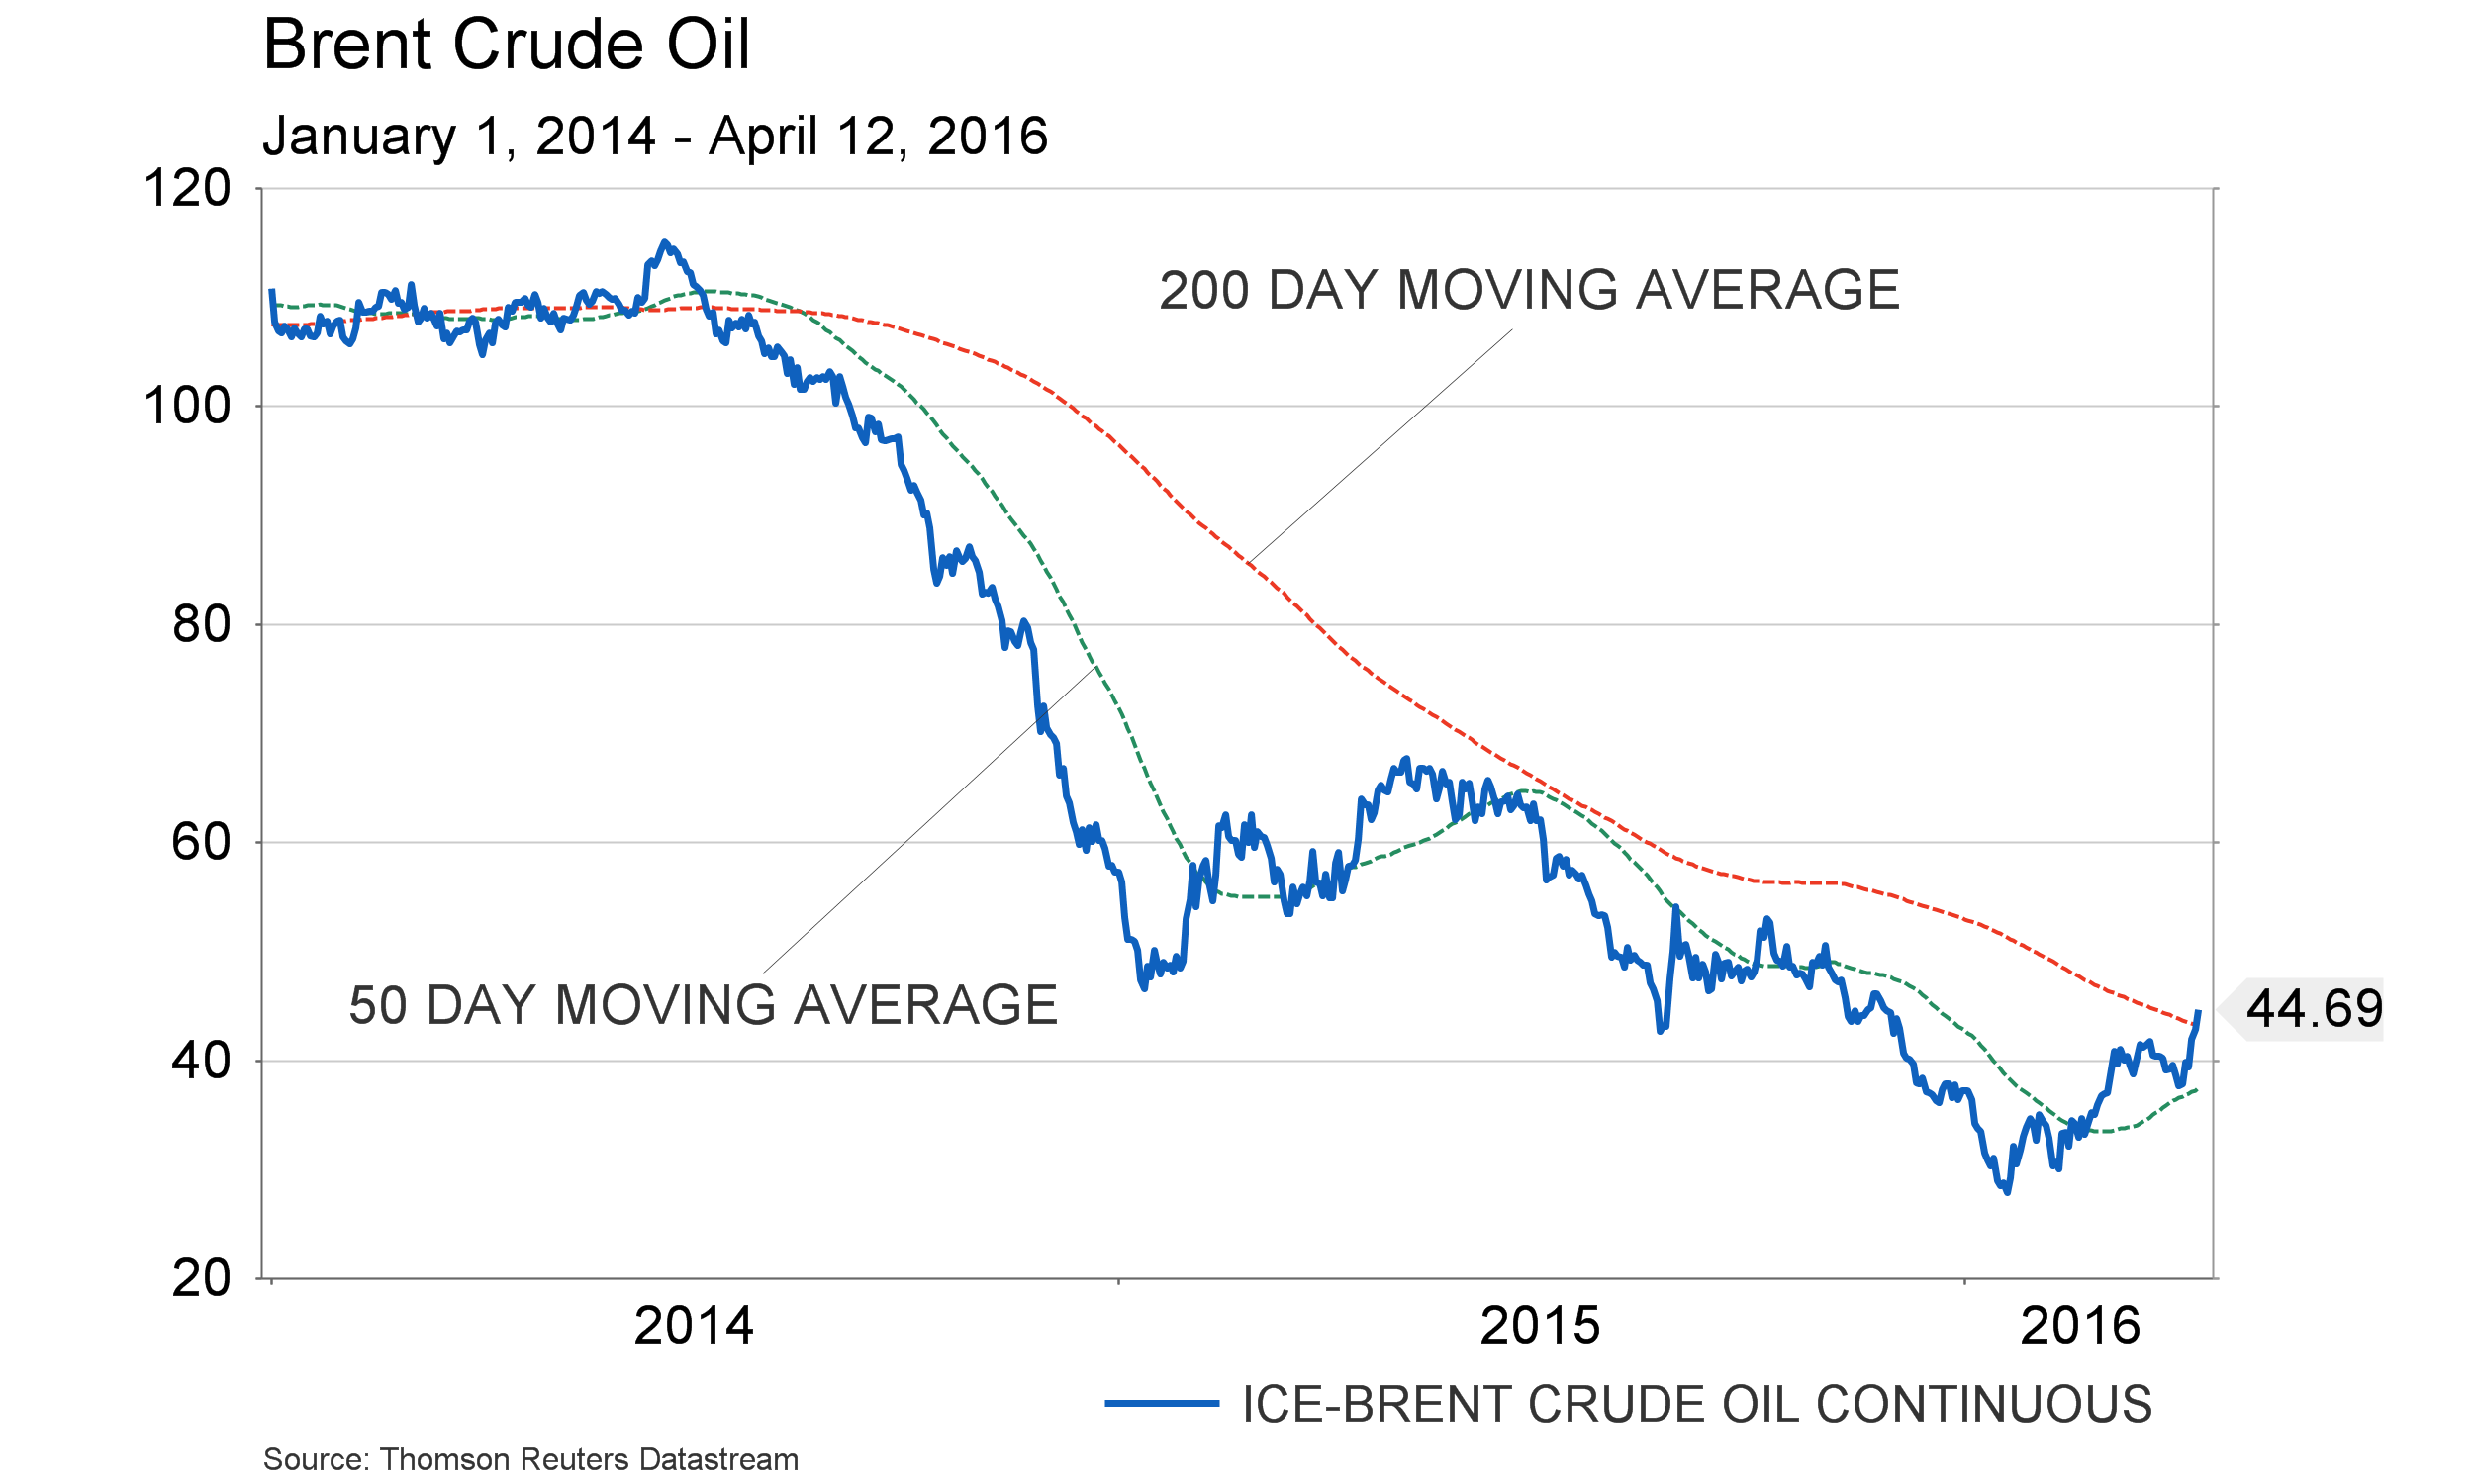 April 14, 2016 - Brent Crude Oil 2014 - with moving average